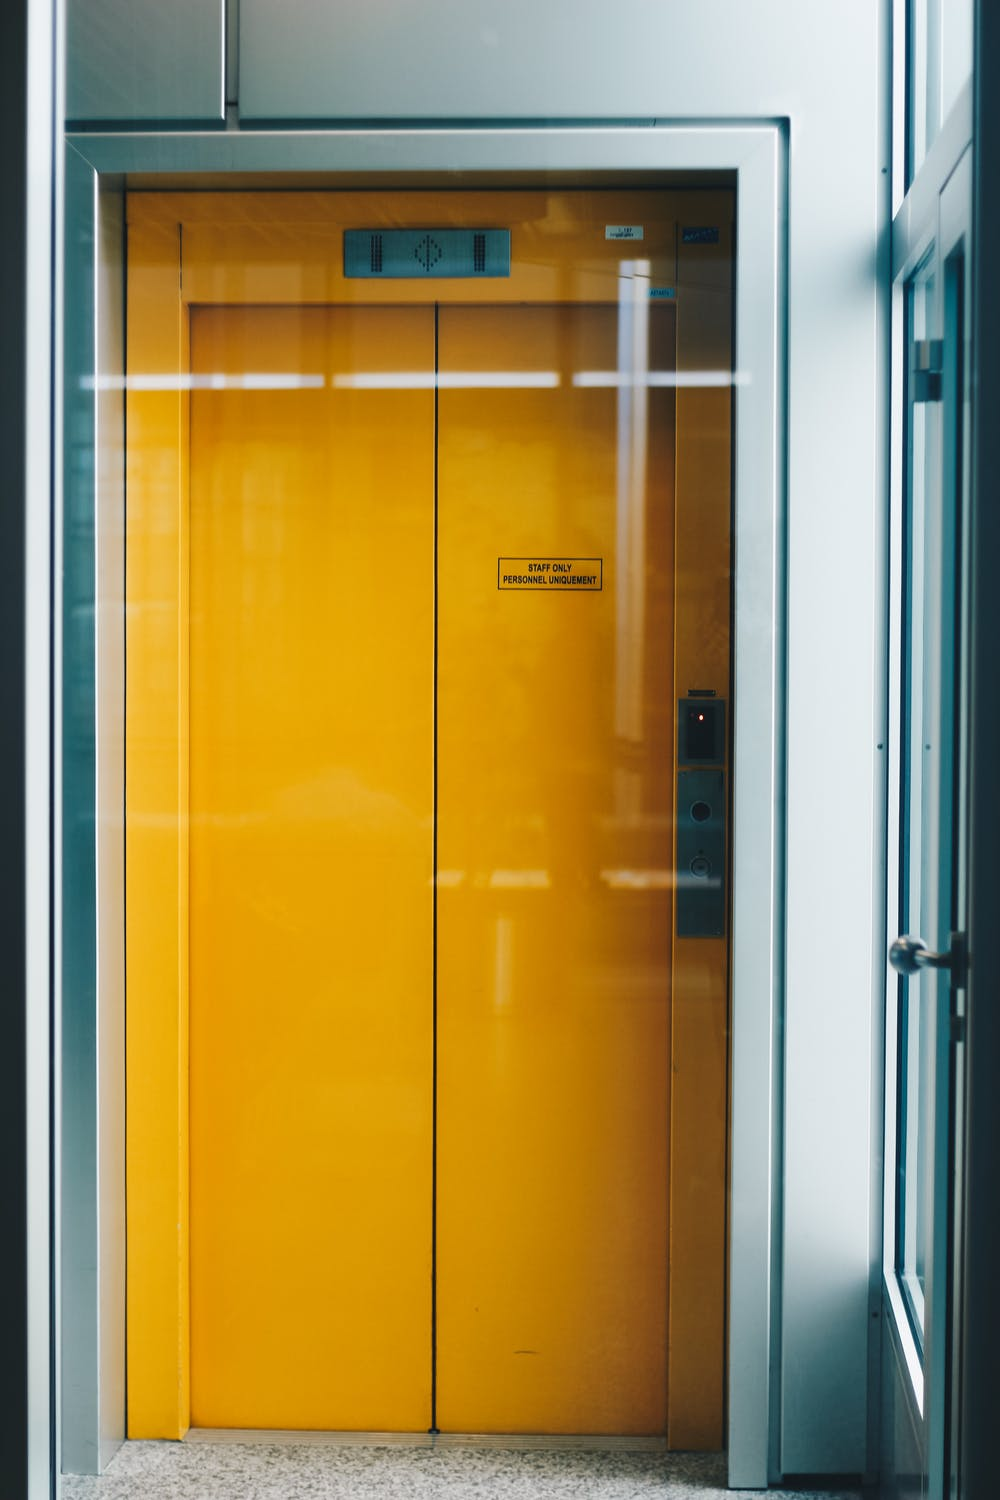 A 'staff only' elevator | Photo: Pexels